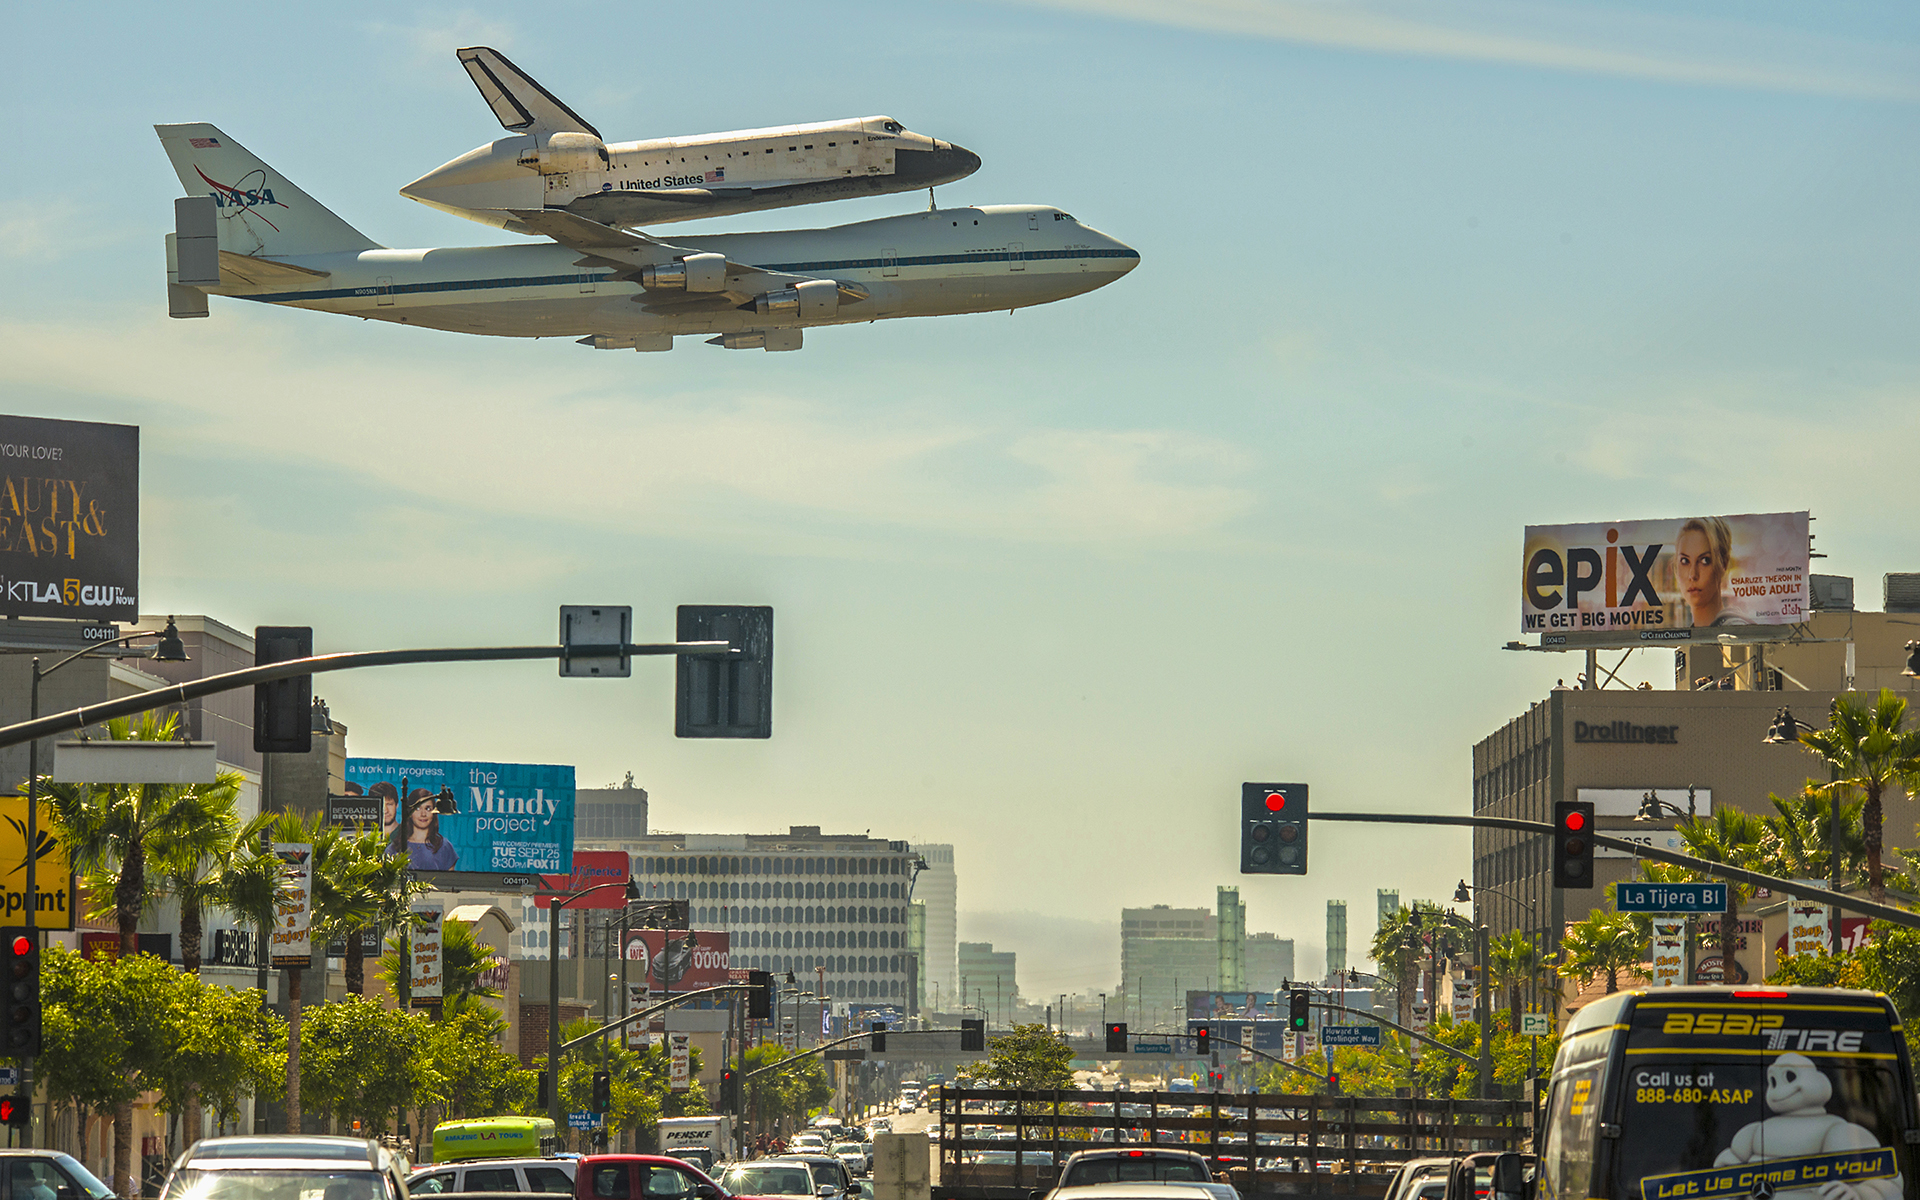 space shuttle endeavour full hd wallpaper and background image